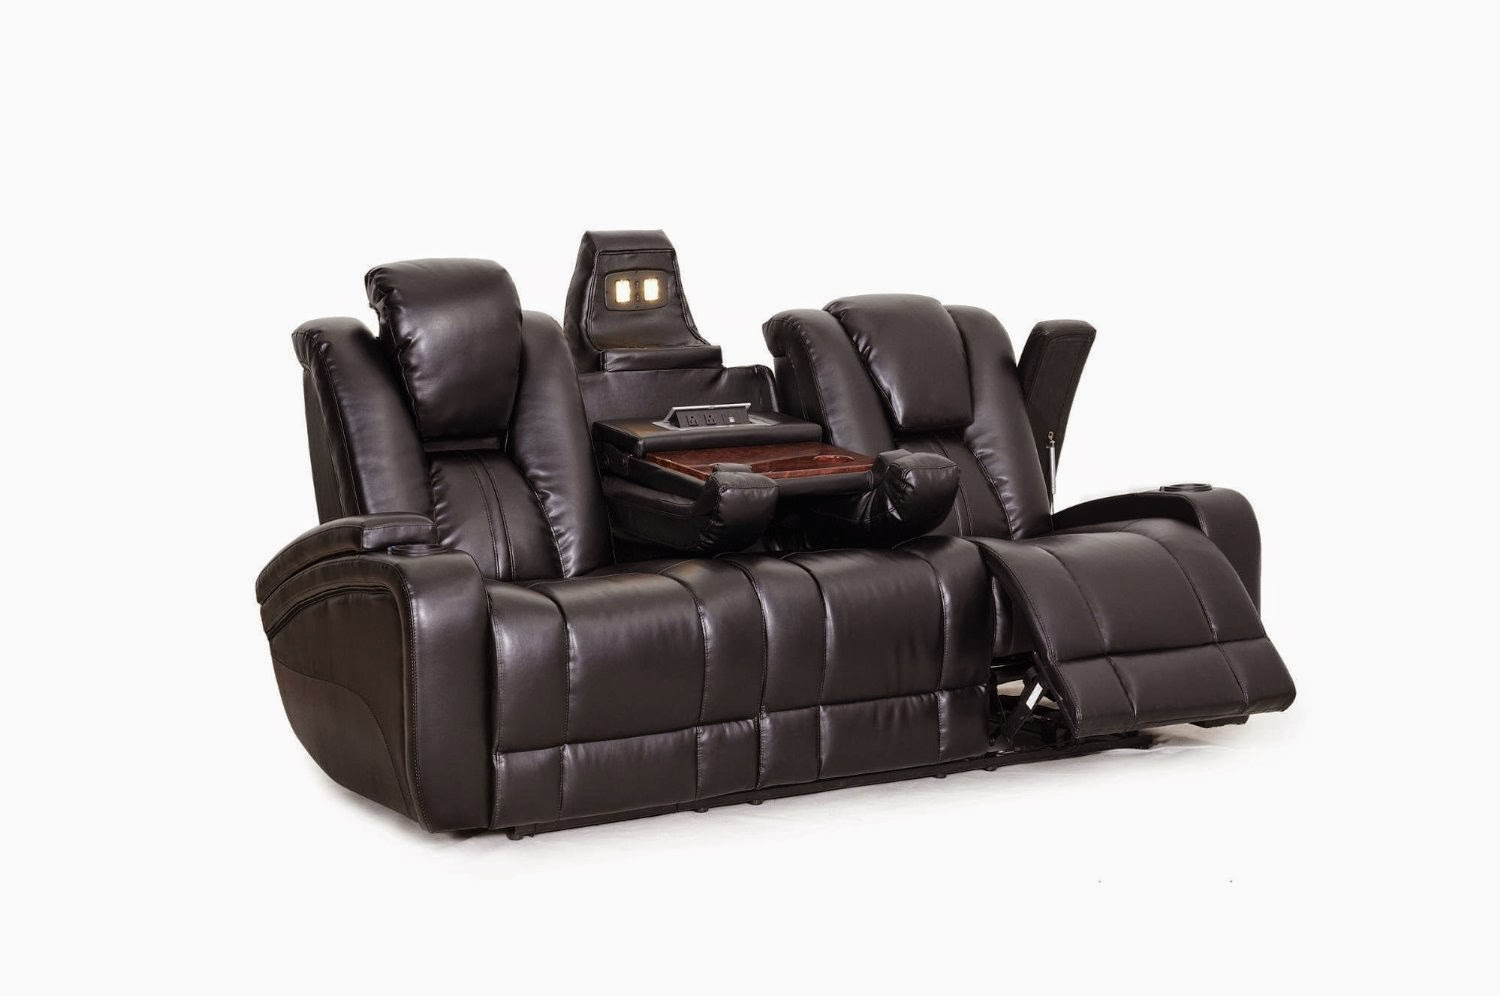 Double Sofa Recliner Aston Leather Bed Black Cheap Reclining Sofas Sale Hawkeye